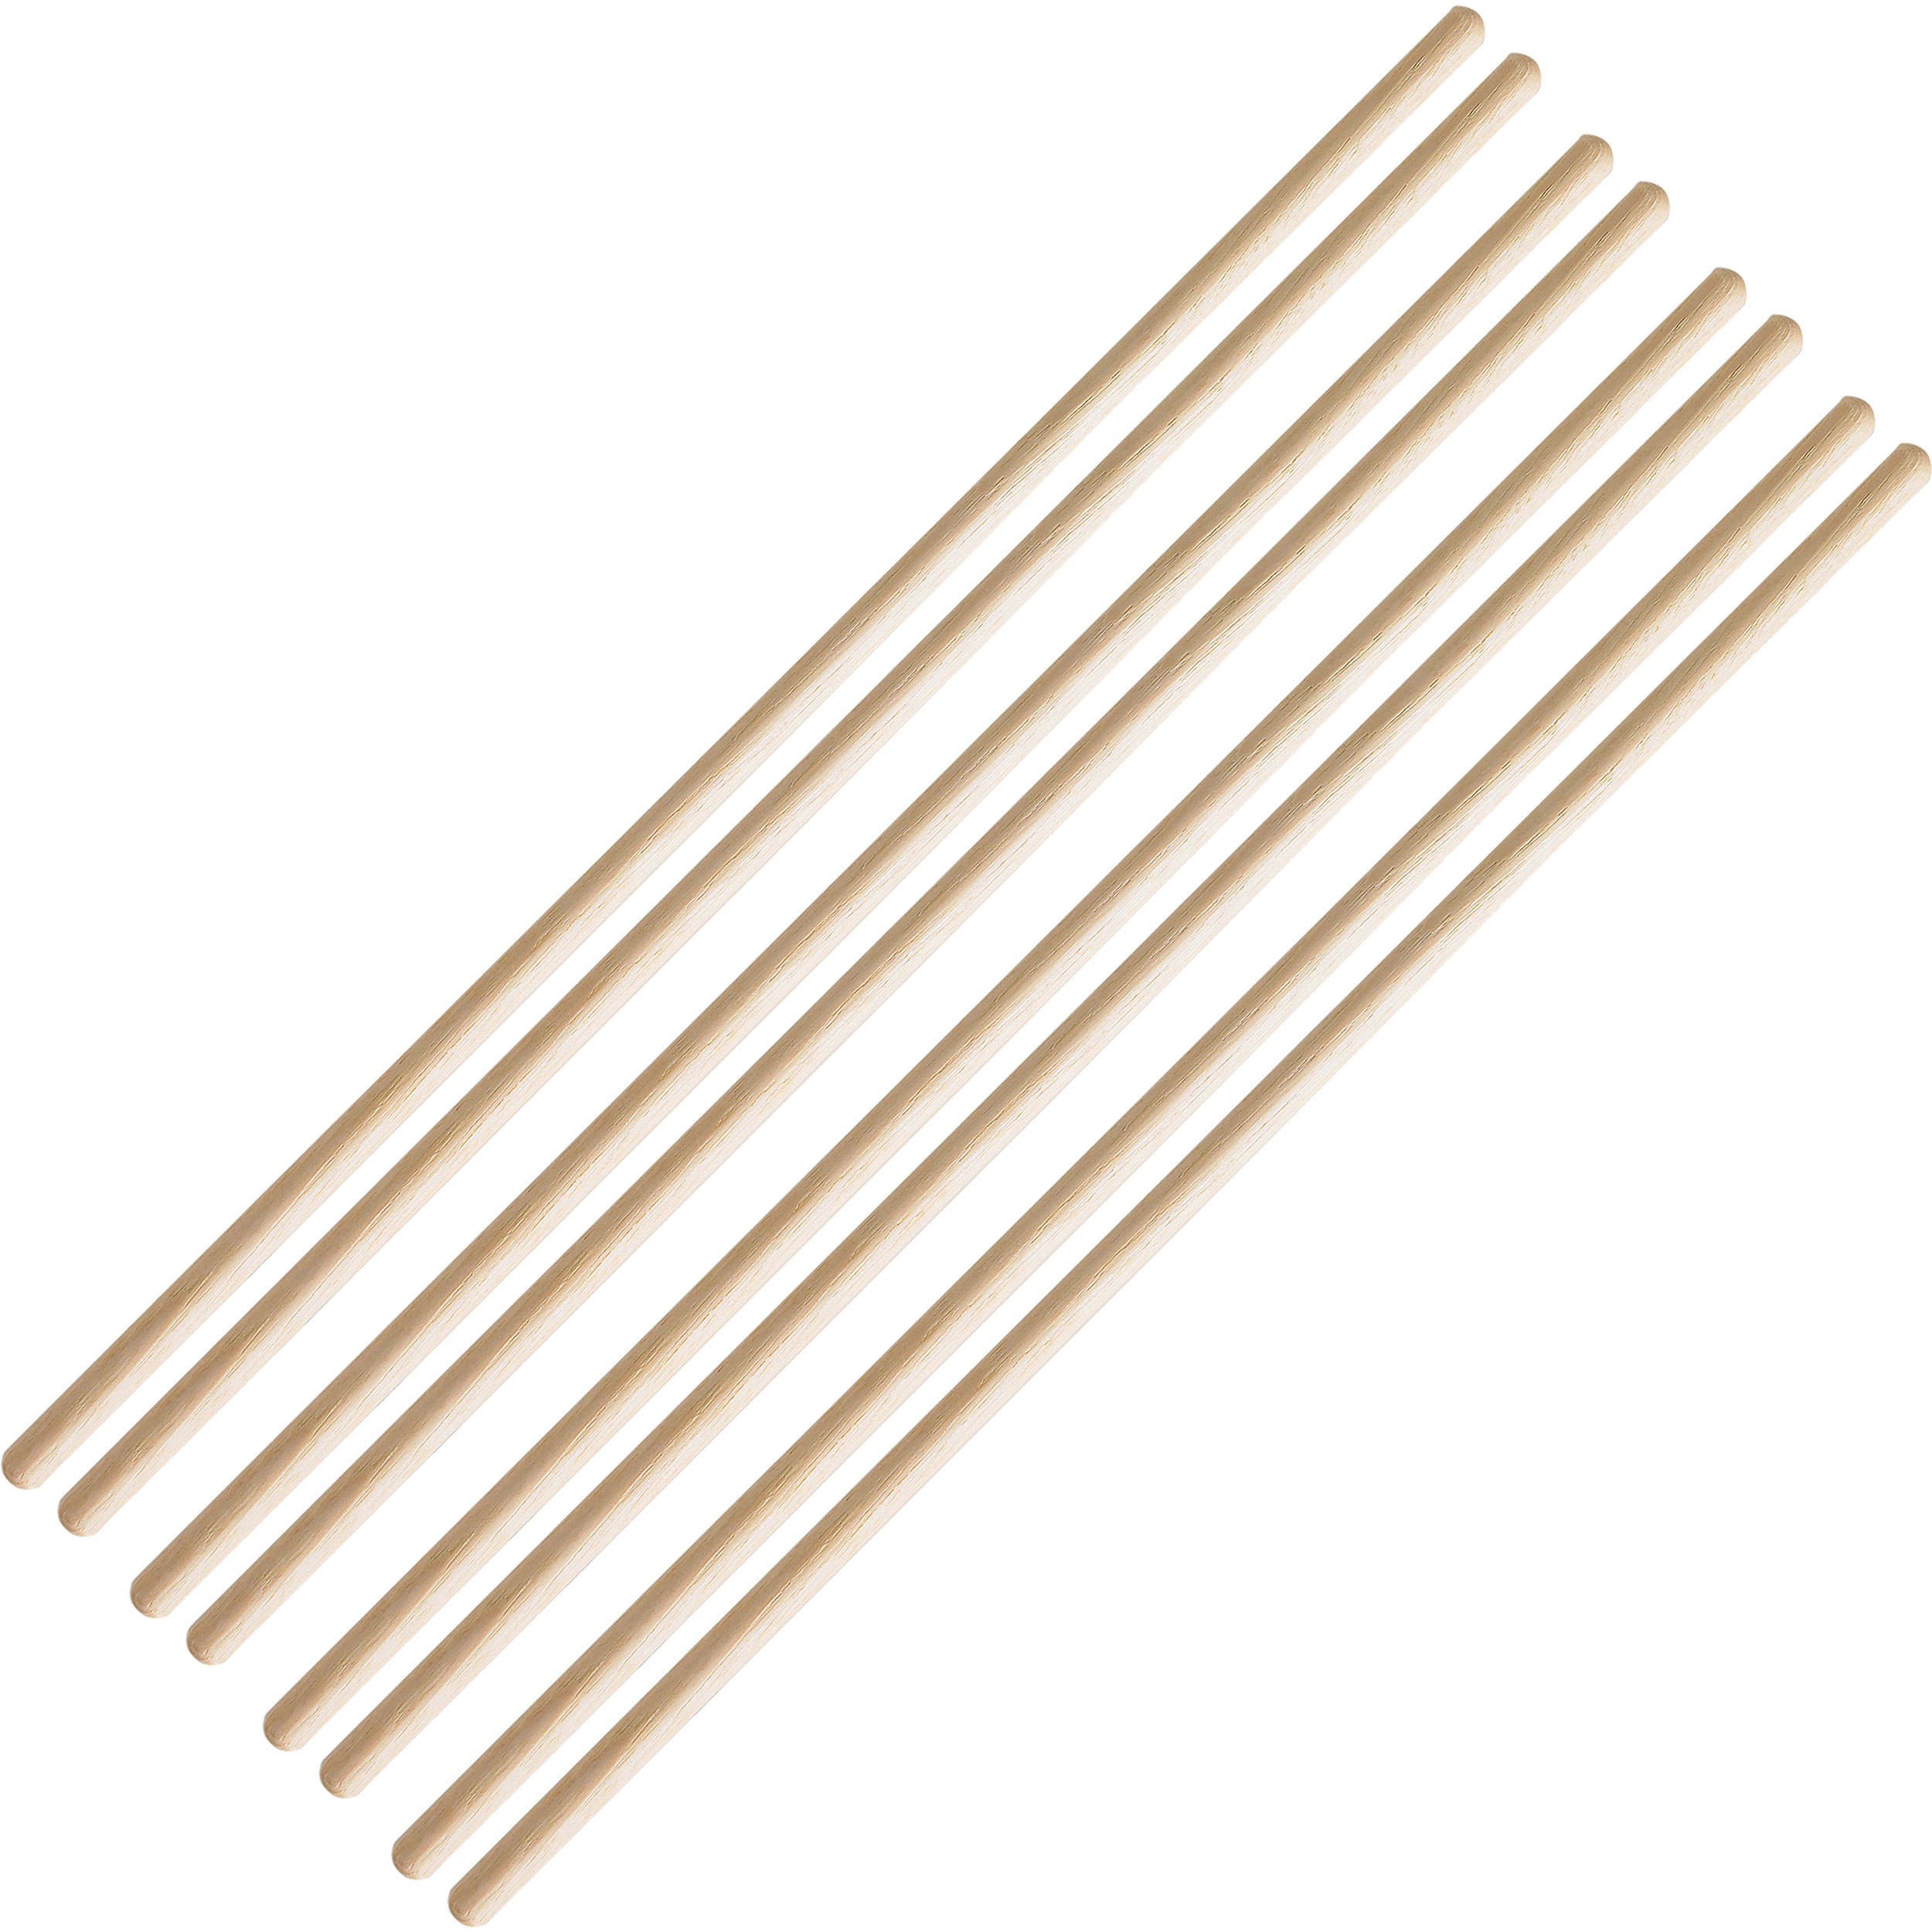 Innovative Percussion Lalo Davila Azucar Signature Timbale Sticks (4 Pairs)